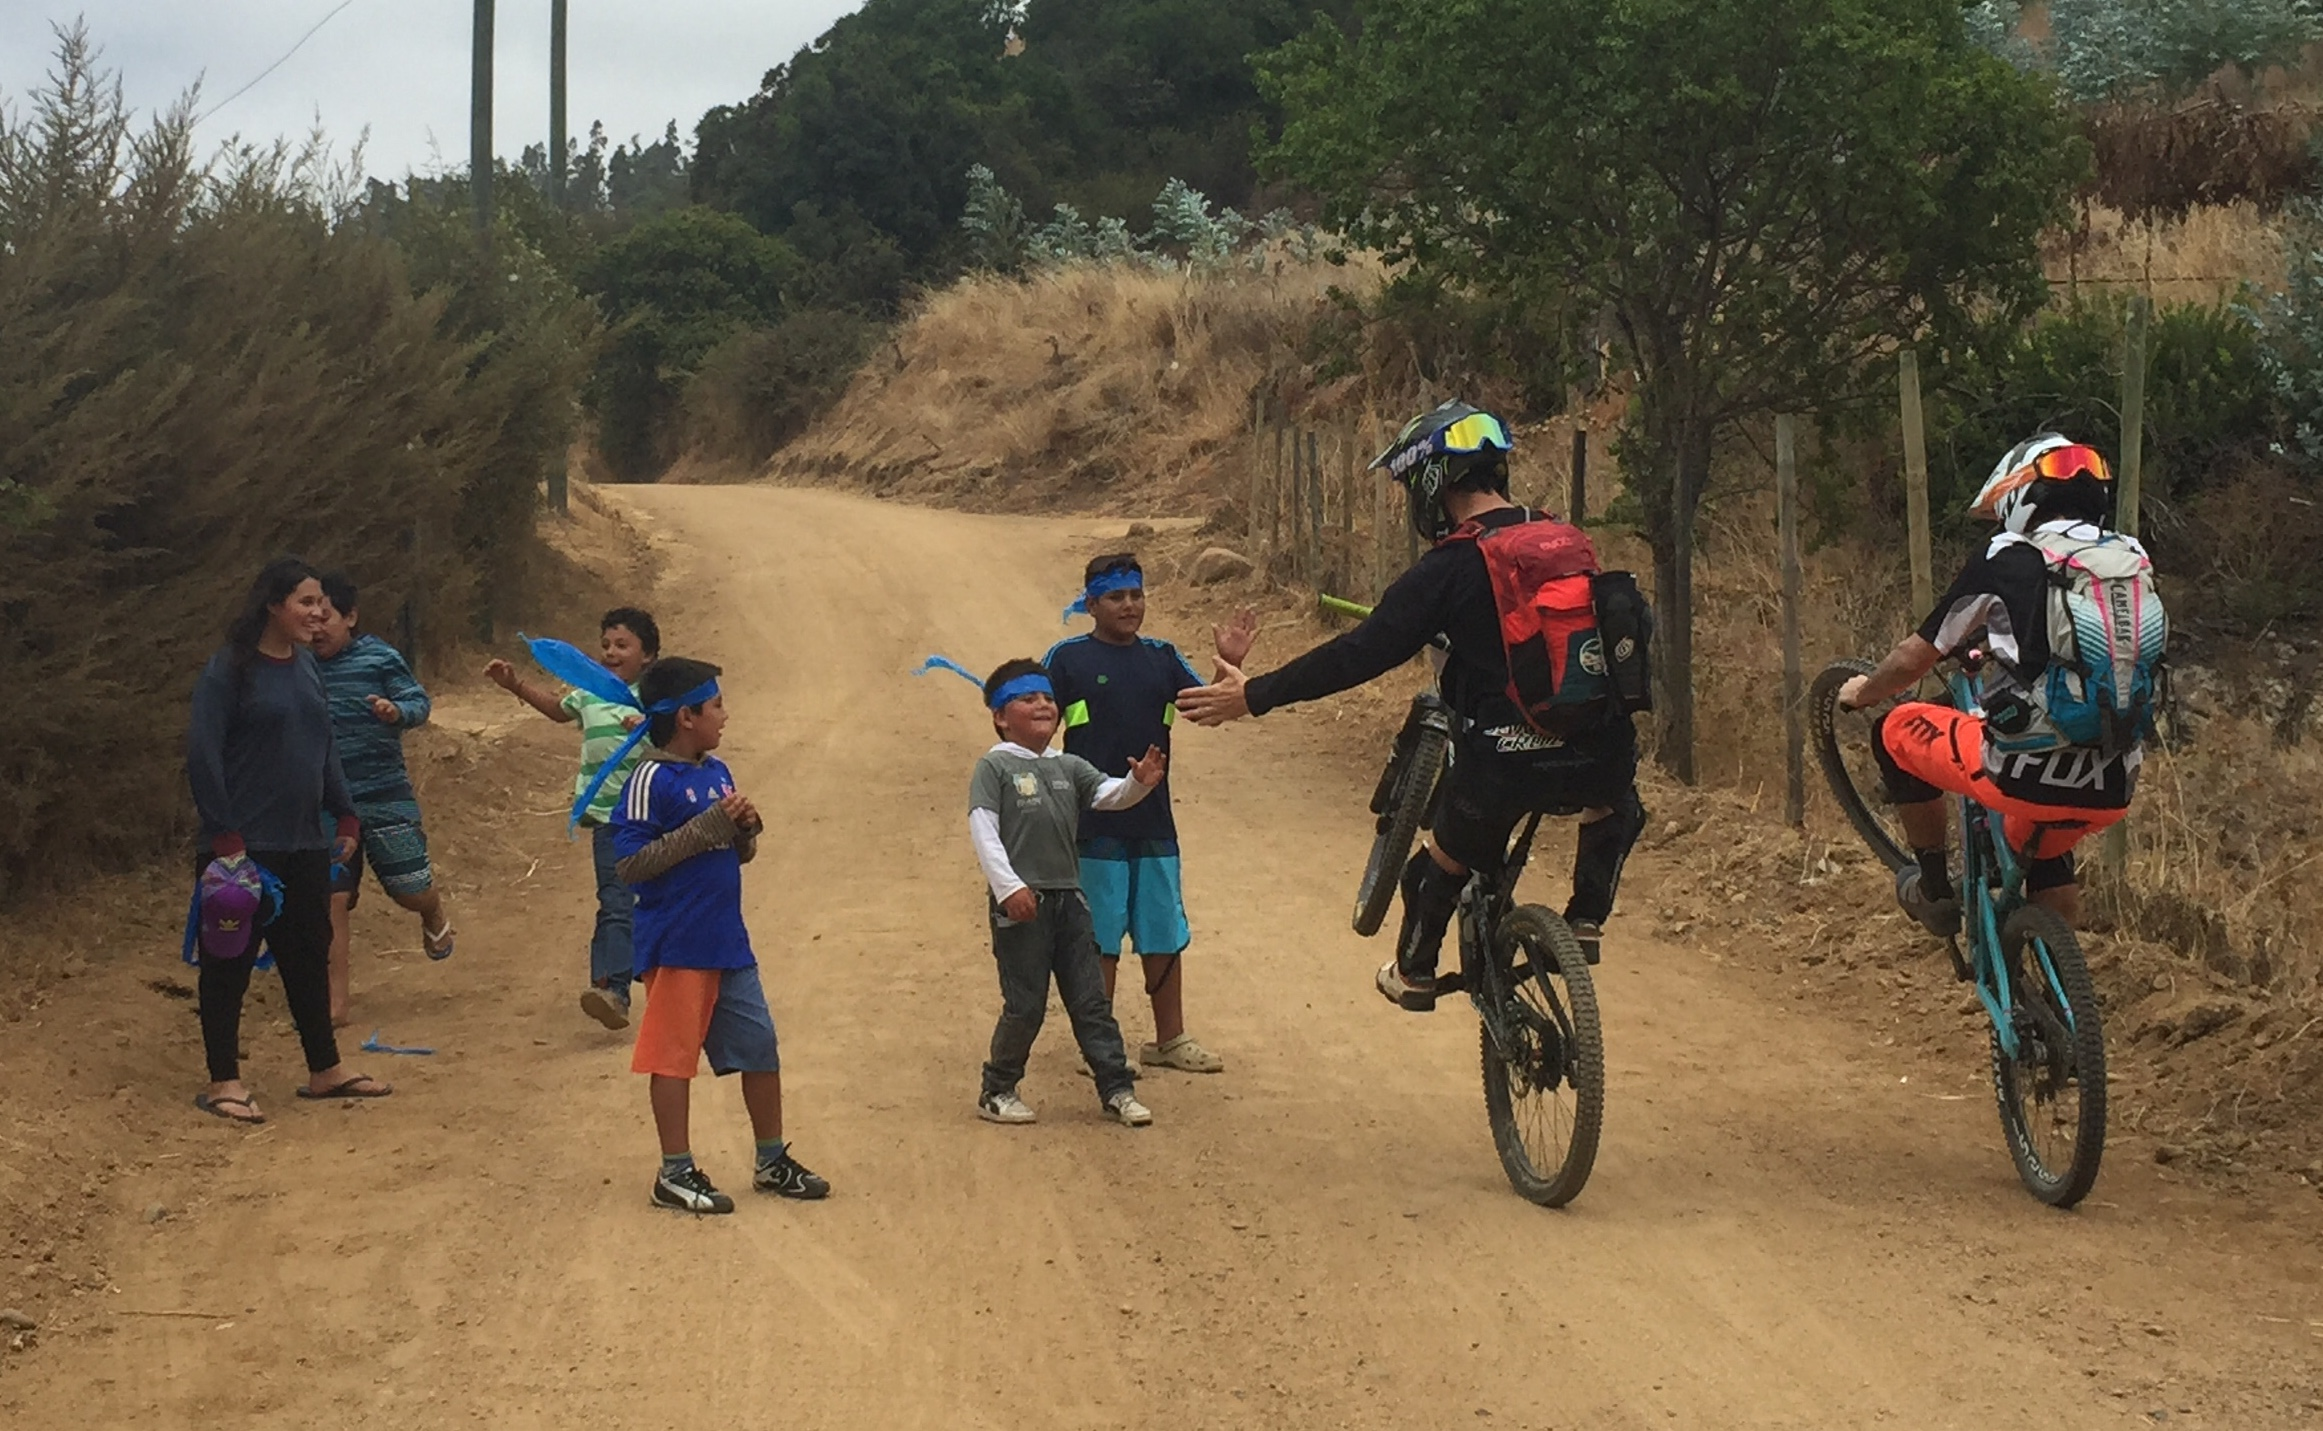 Santa Cruz marketing man and BMX legend Allan Cooke high 5's some local kids who were out cheering us on.